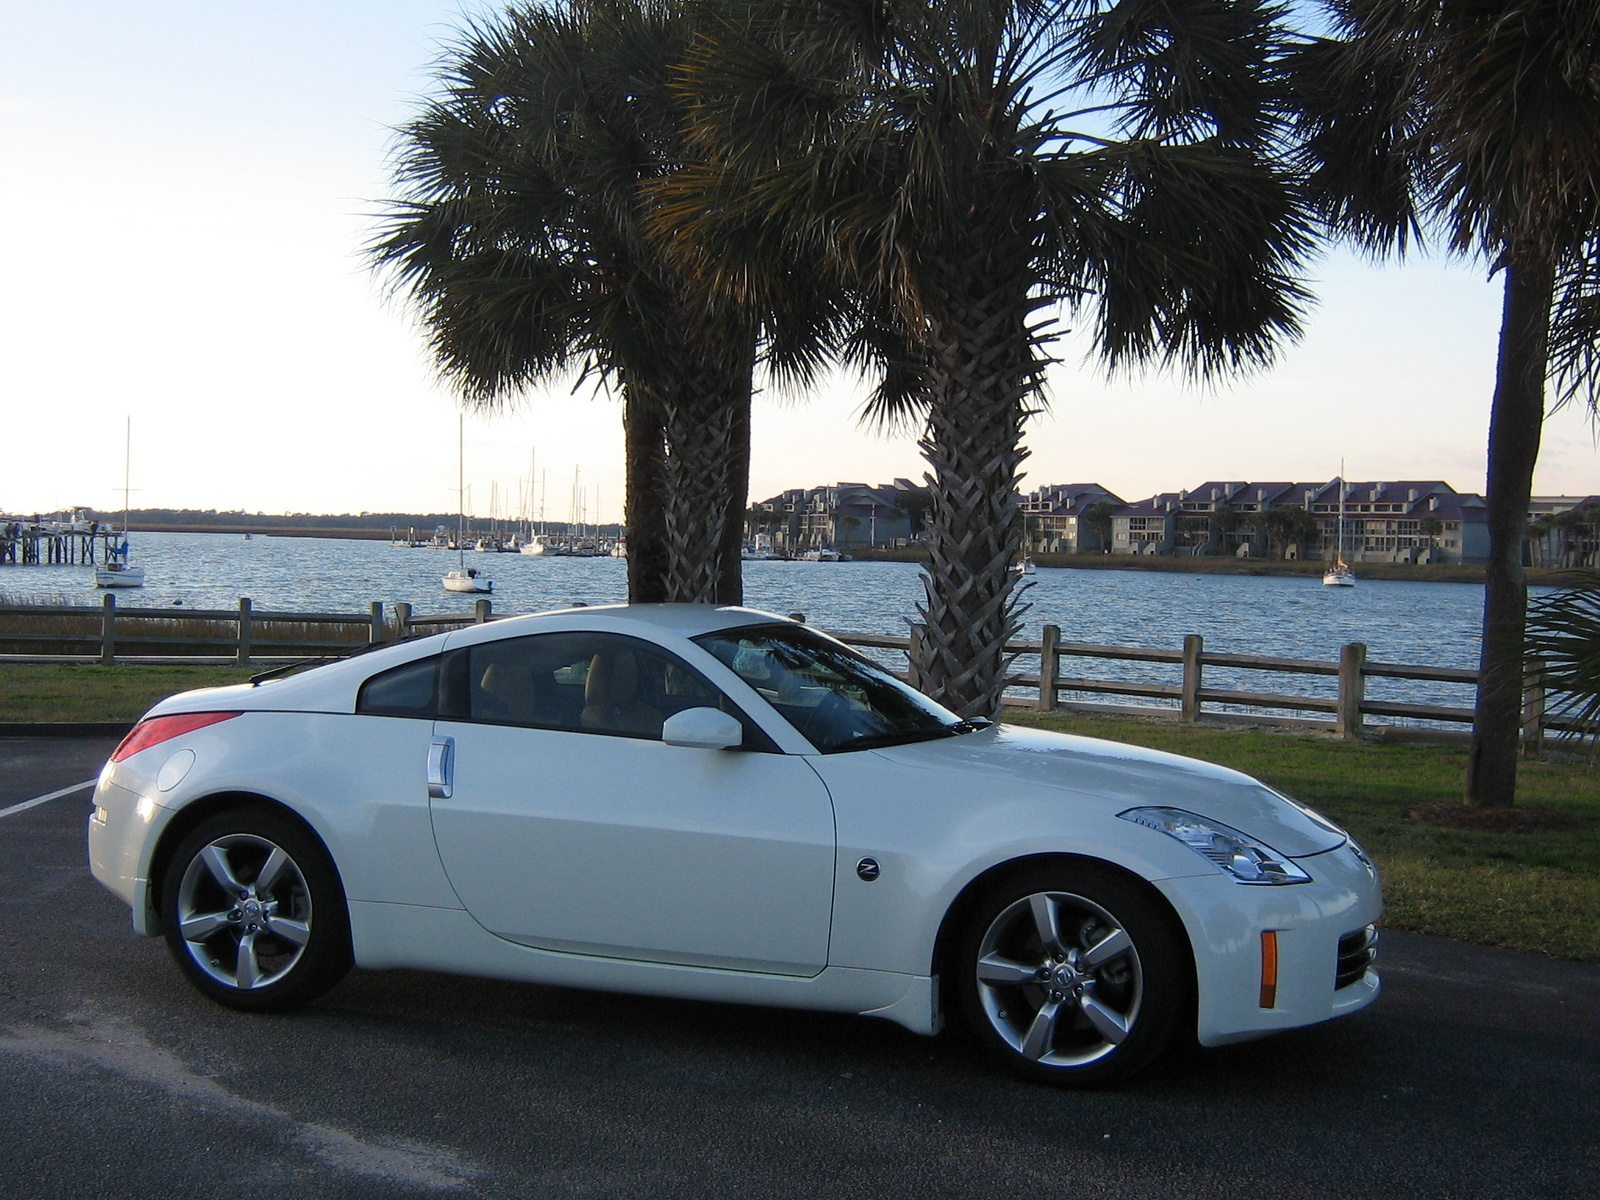 2008 Nissan 350z Touring Pictures 2008 Nissan 350z Touring